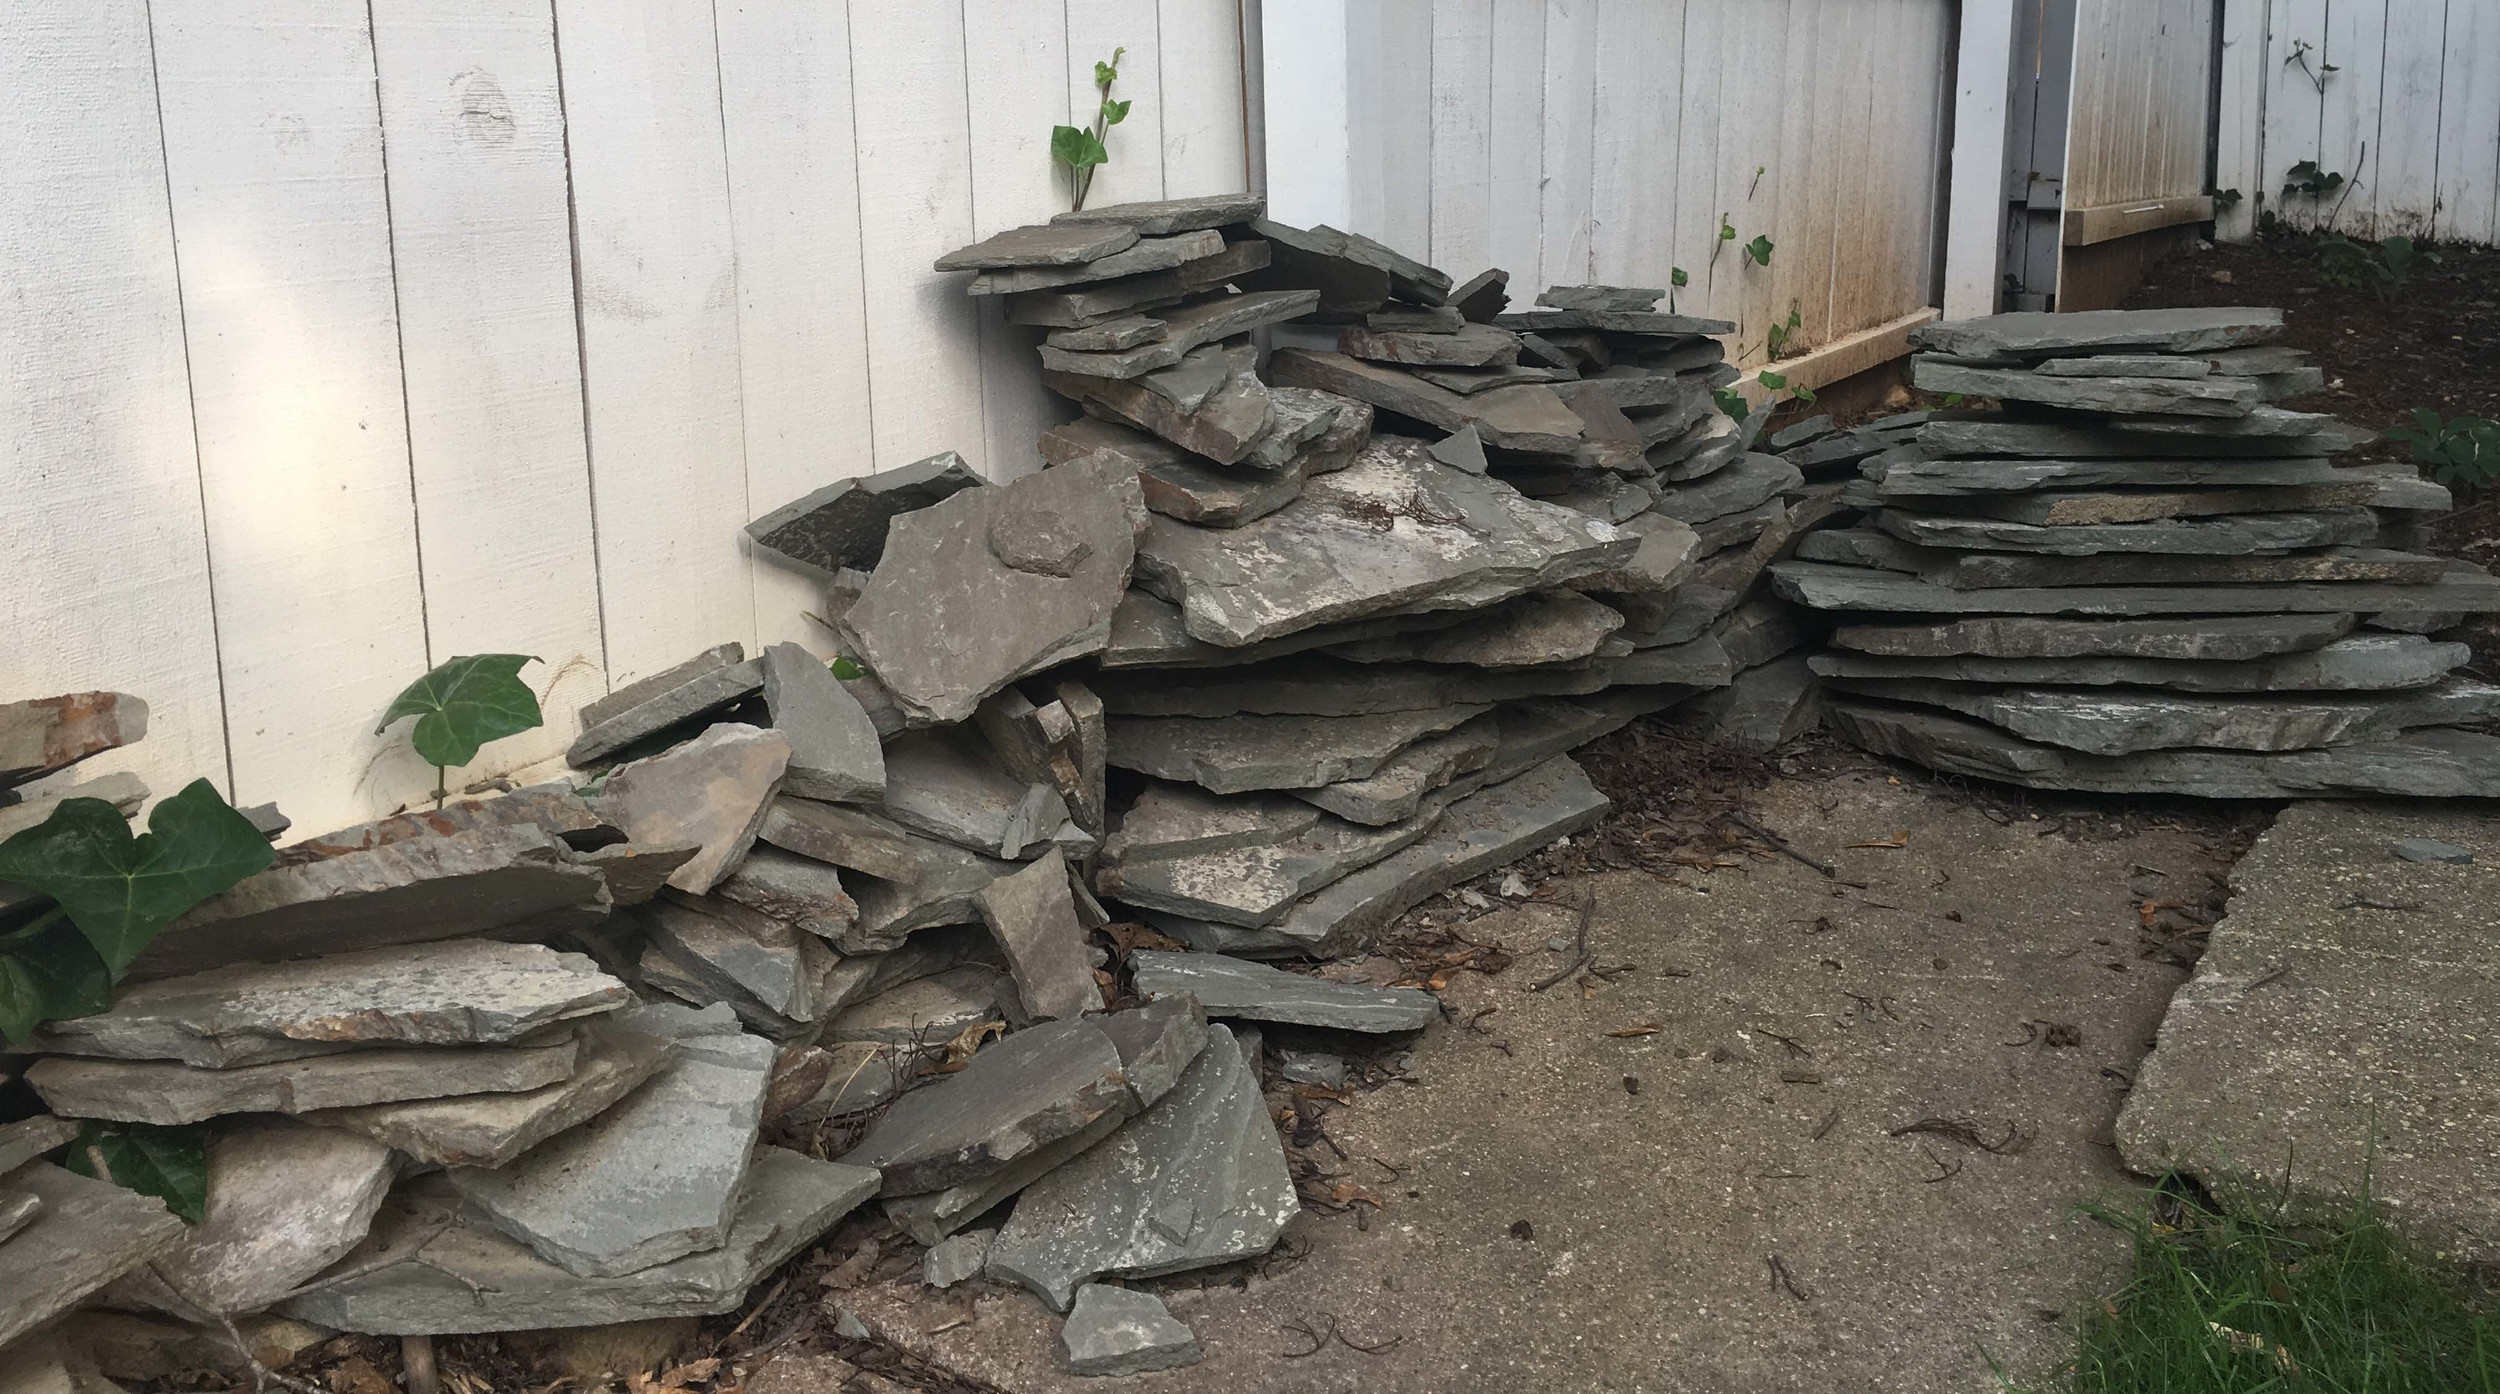 There are enough stones to build a 15-foot-long by 1-foot-high wall.